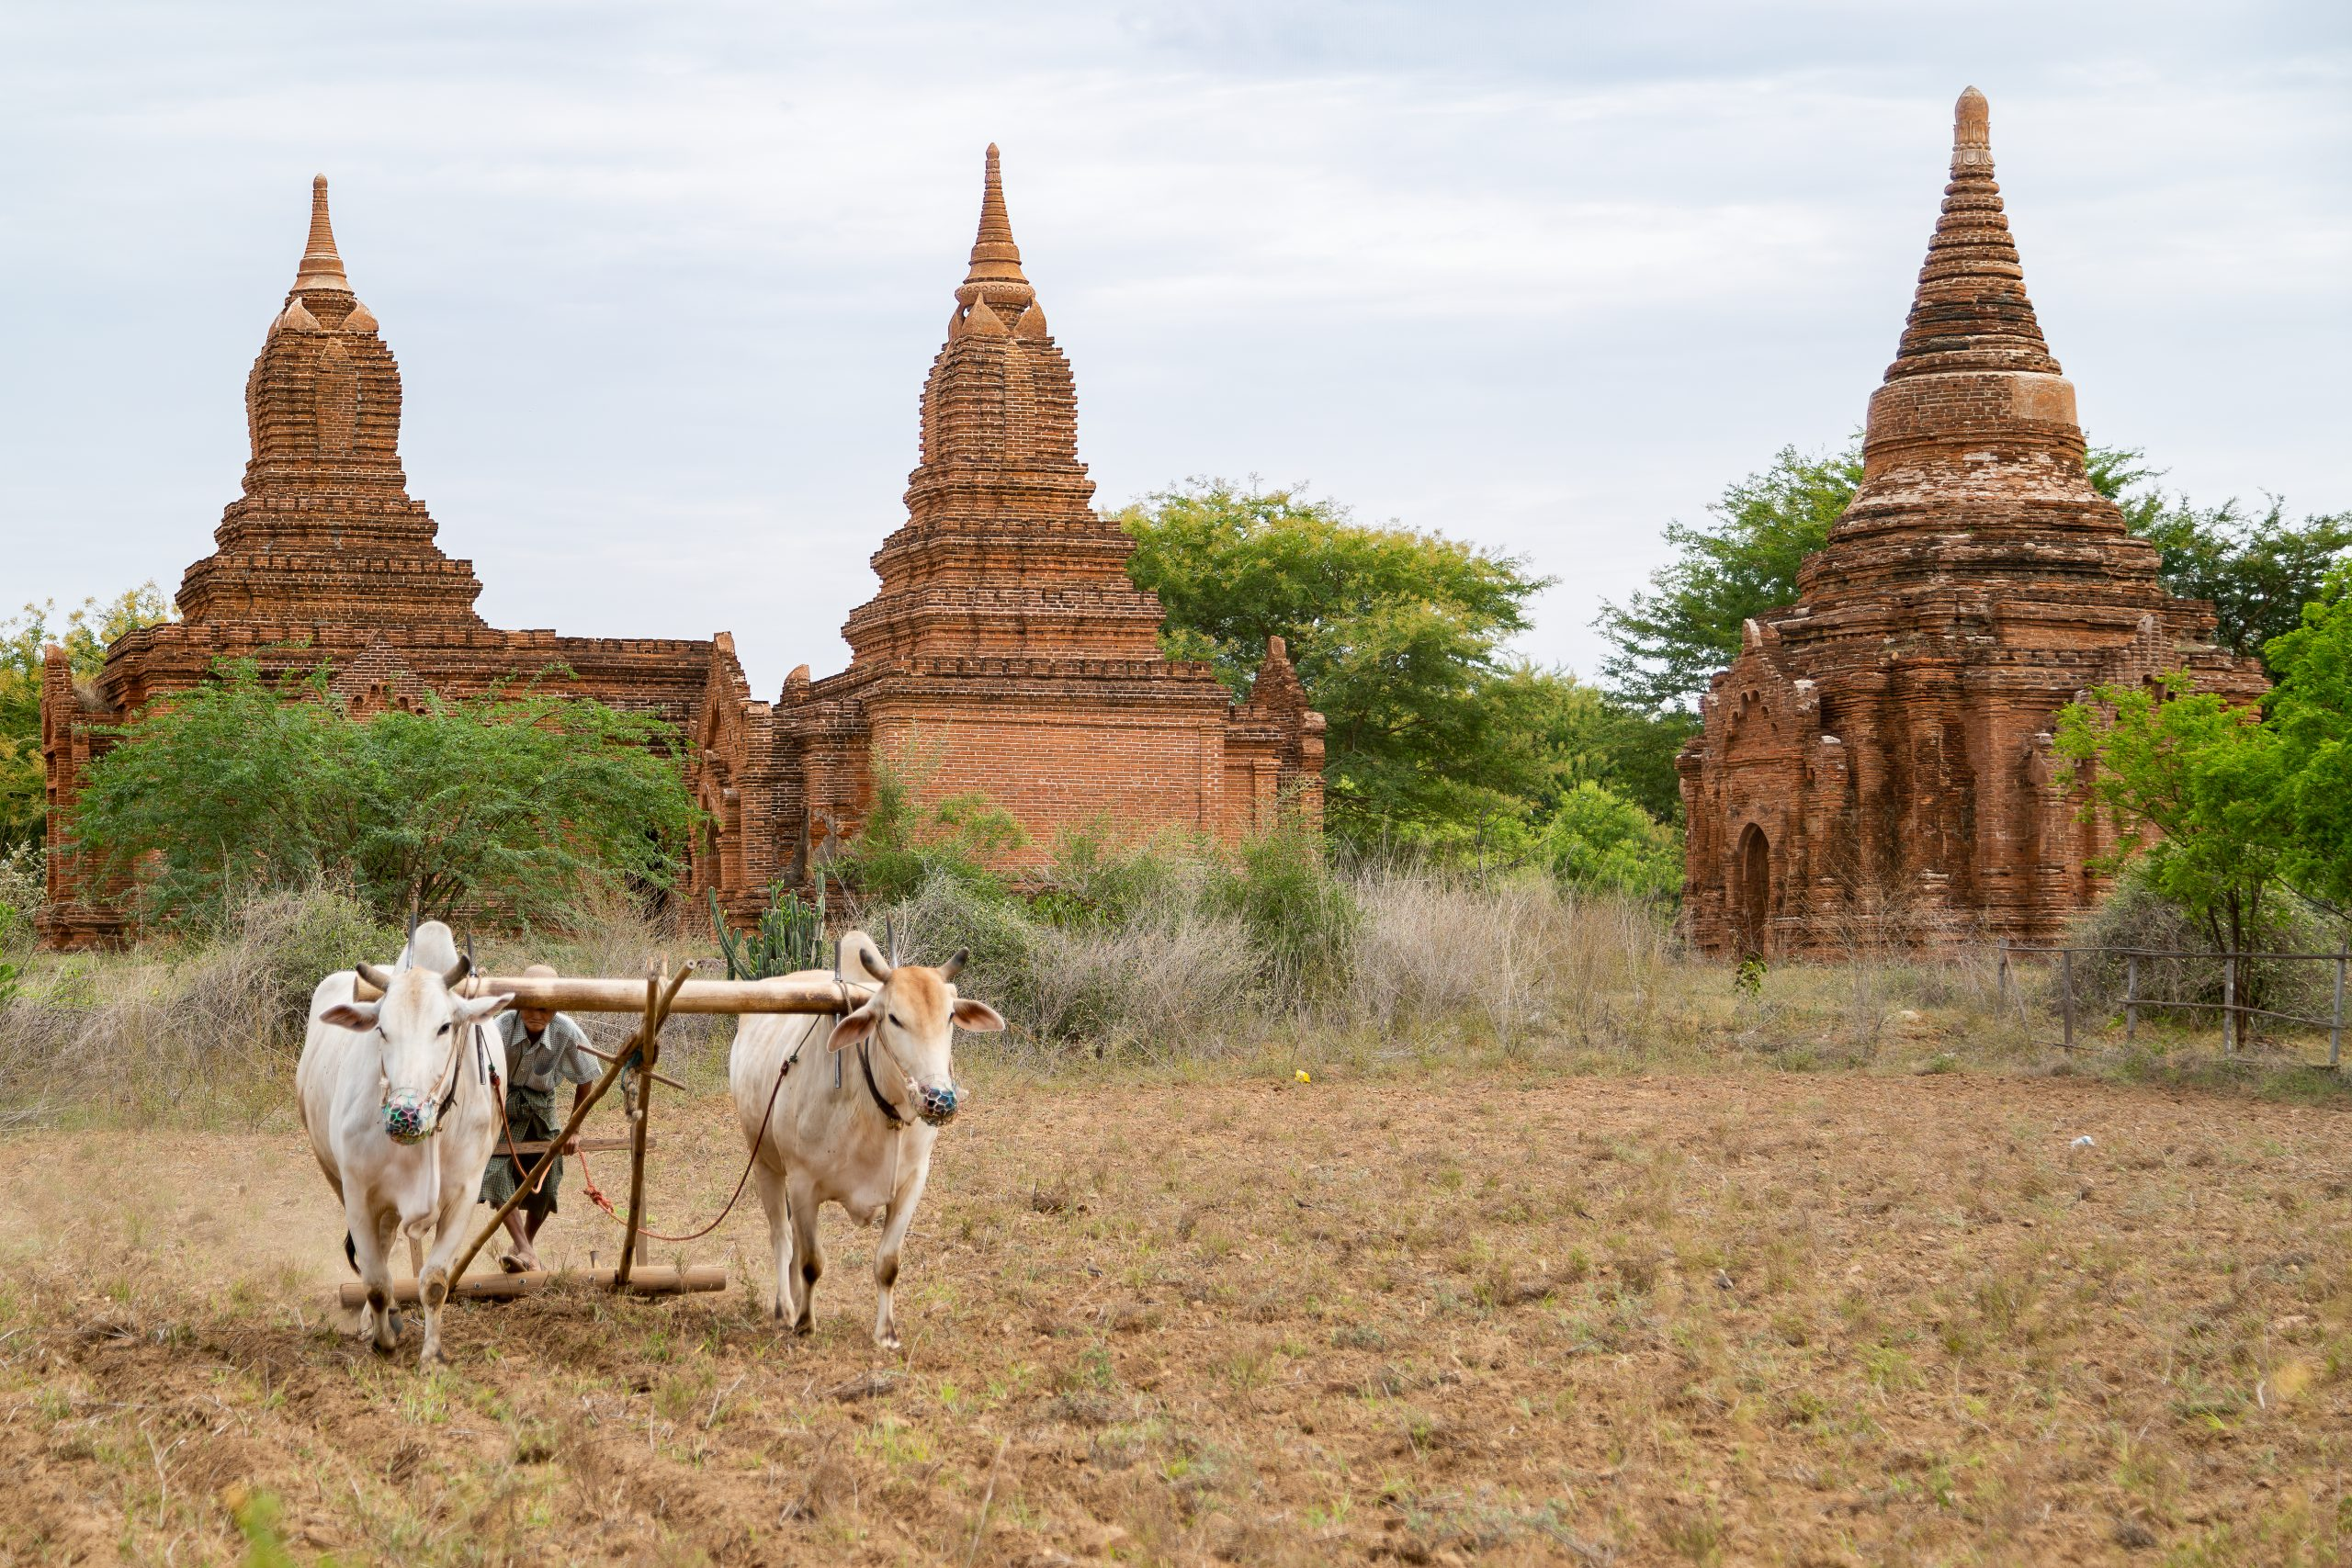 man plowing field with oxen in front of pagodas